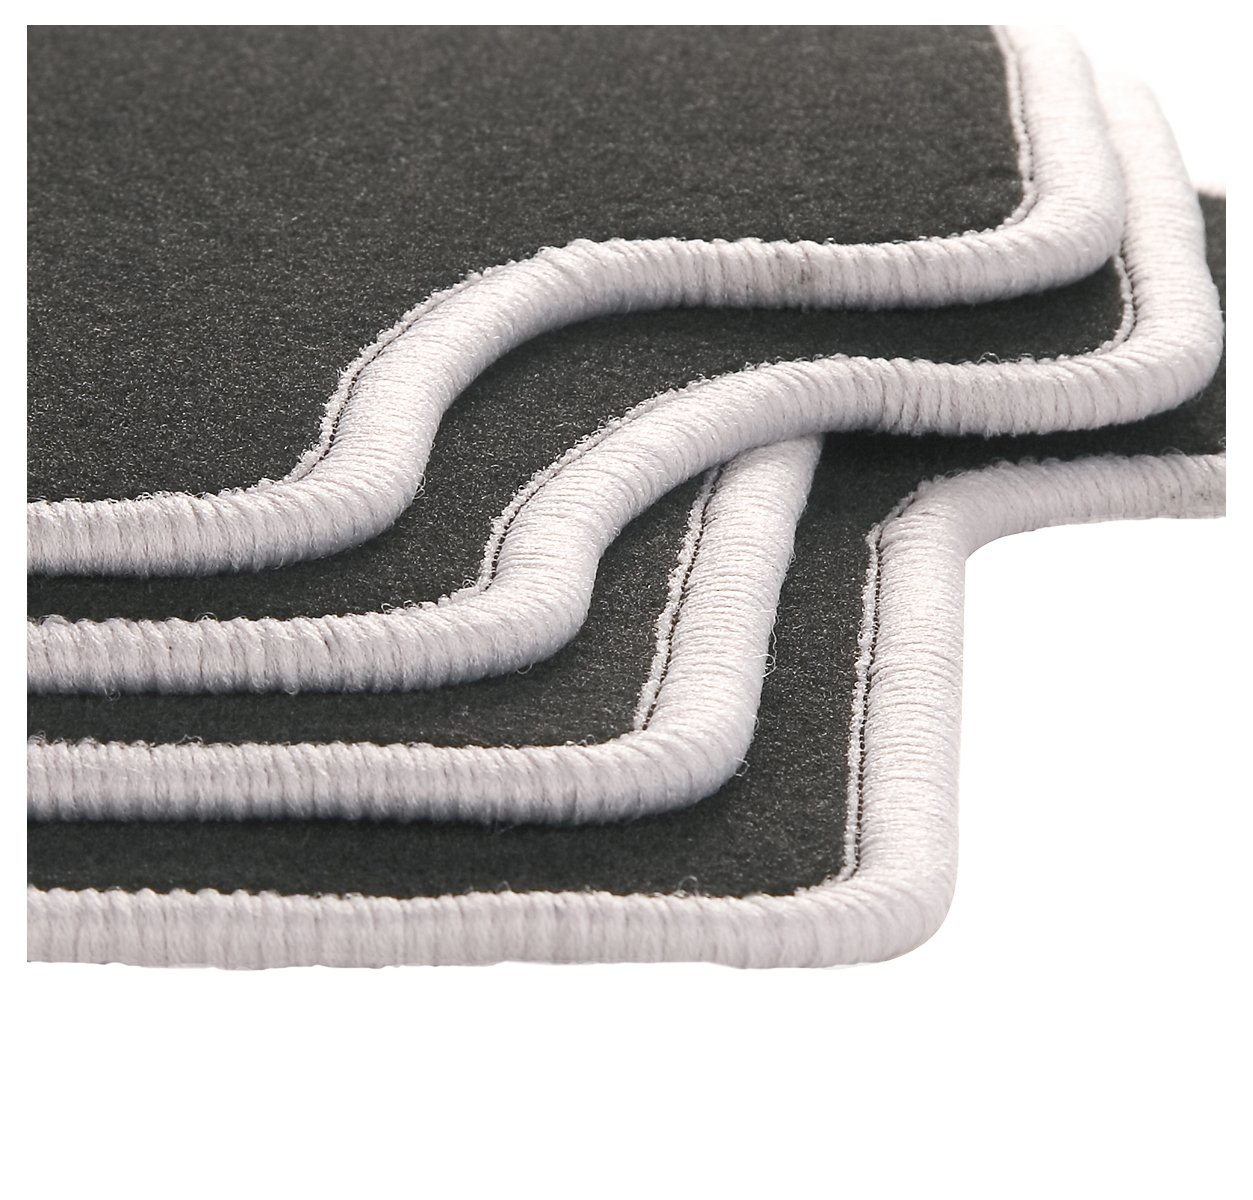 CarFashion 232594 exqui Plus II Ensemble de Tapis